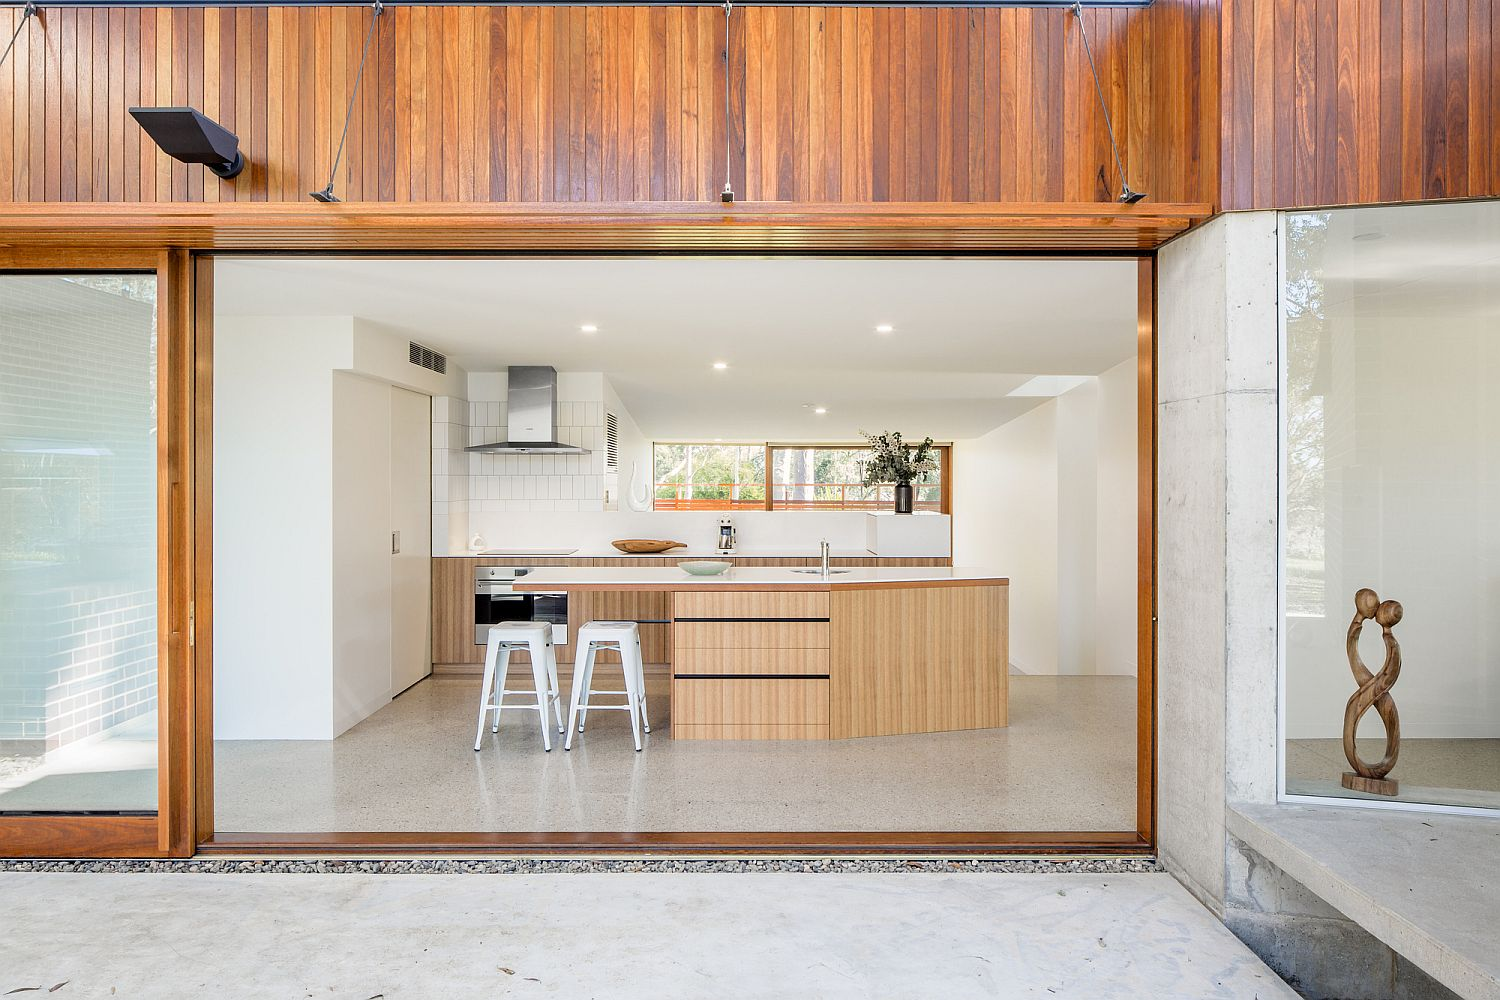 Sliding glass walls with wooden frame for the modern kitchen in white